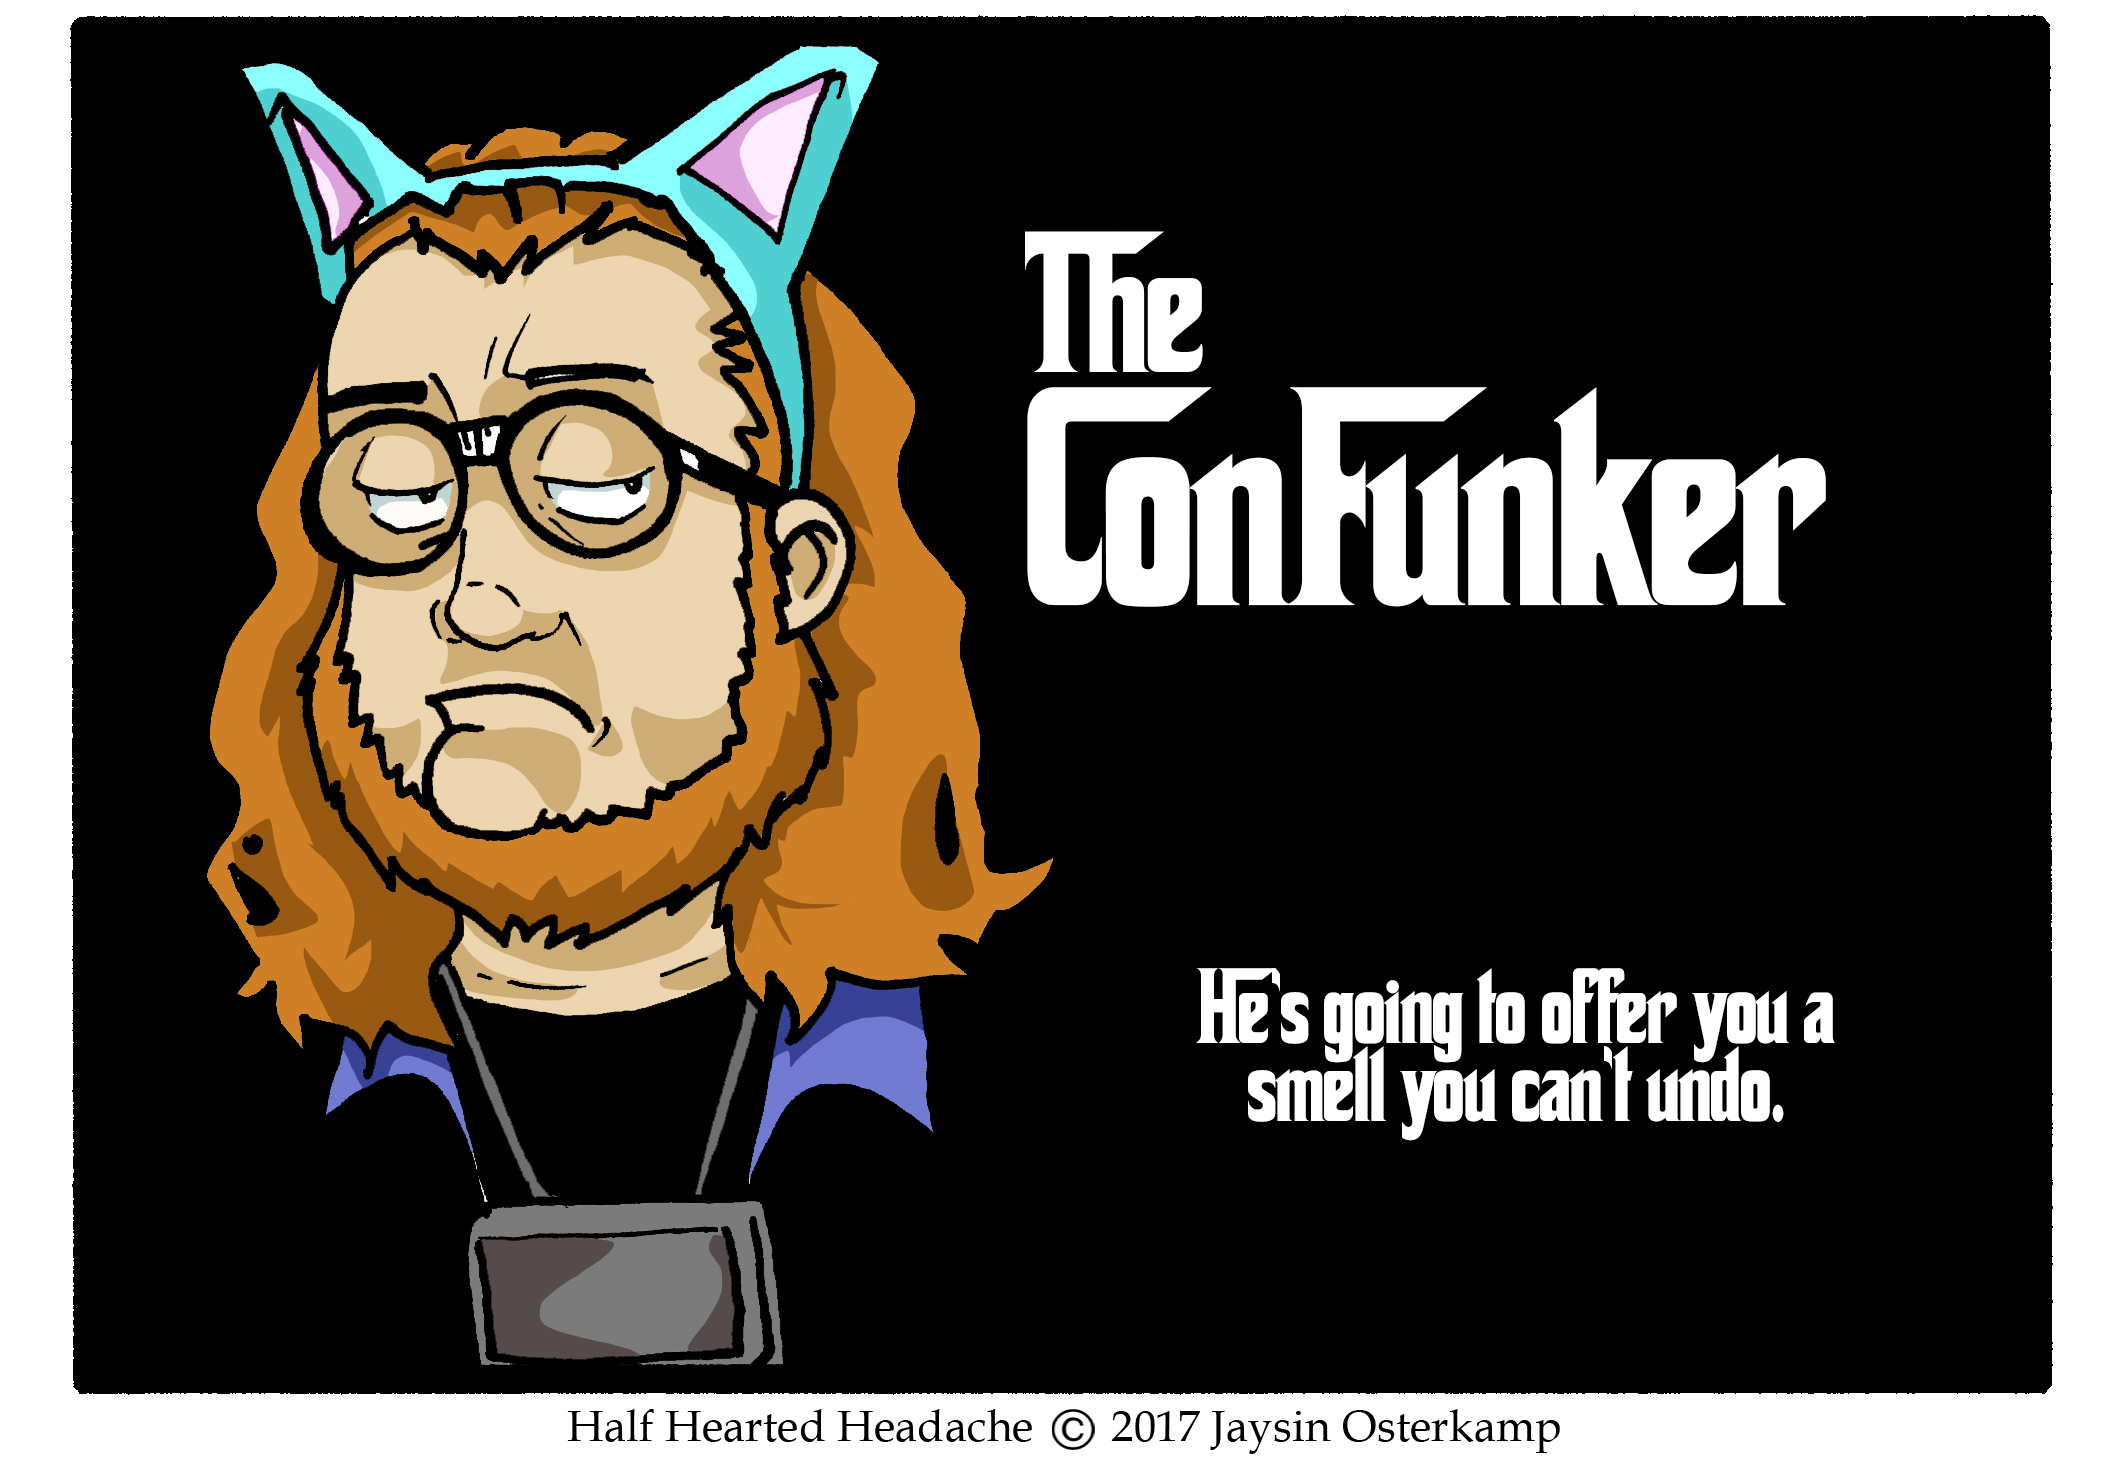 333 – The ConFunker